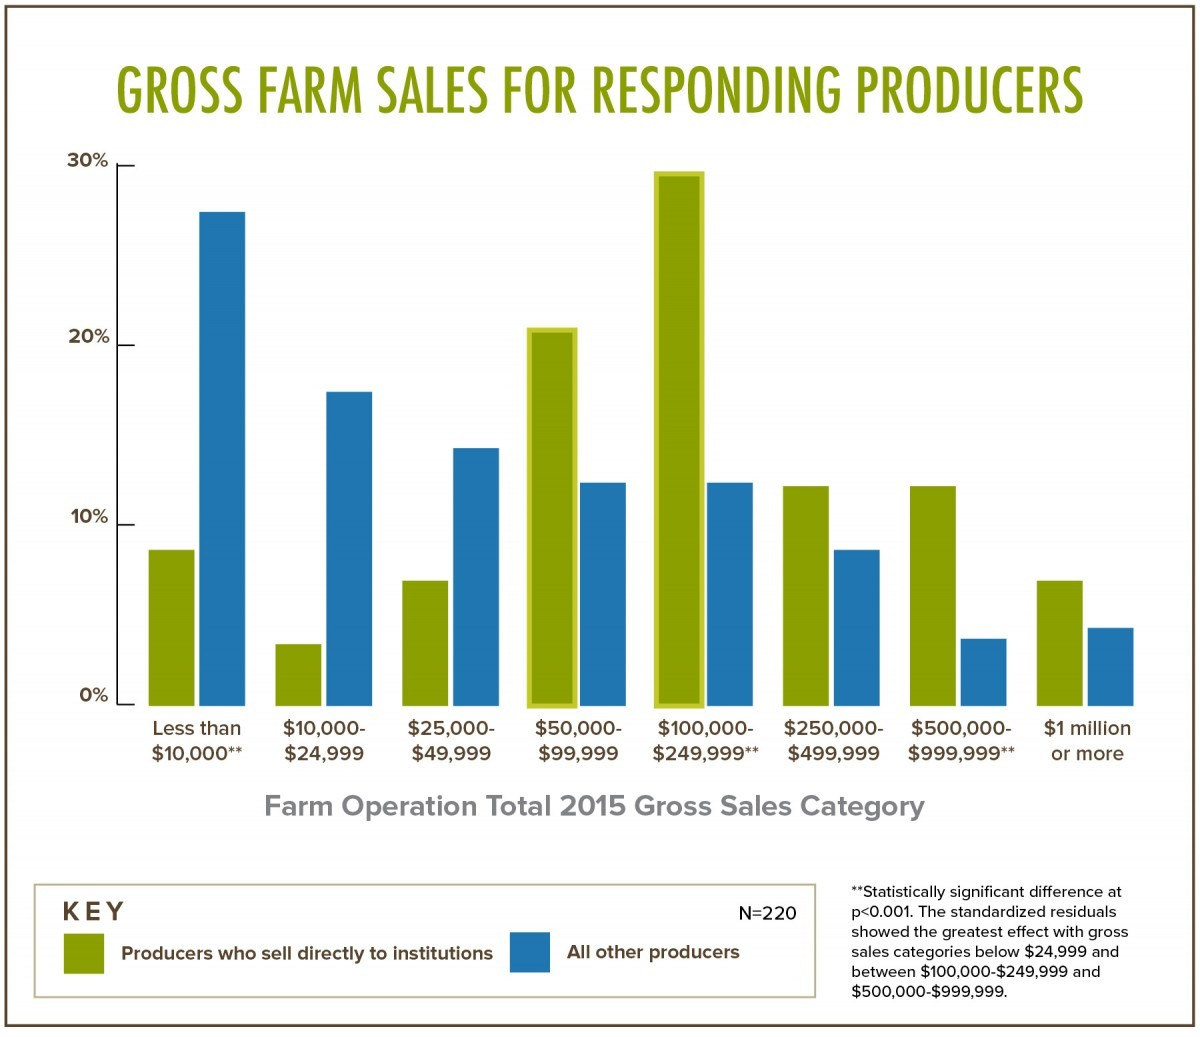 Gross Farm Sales